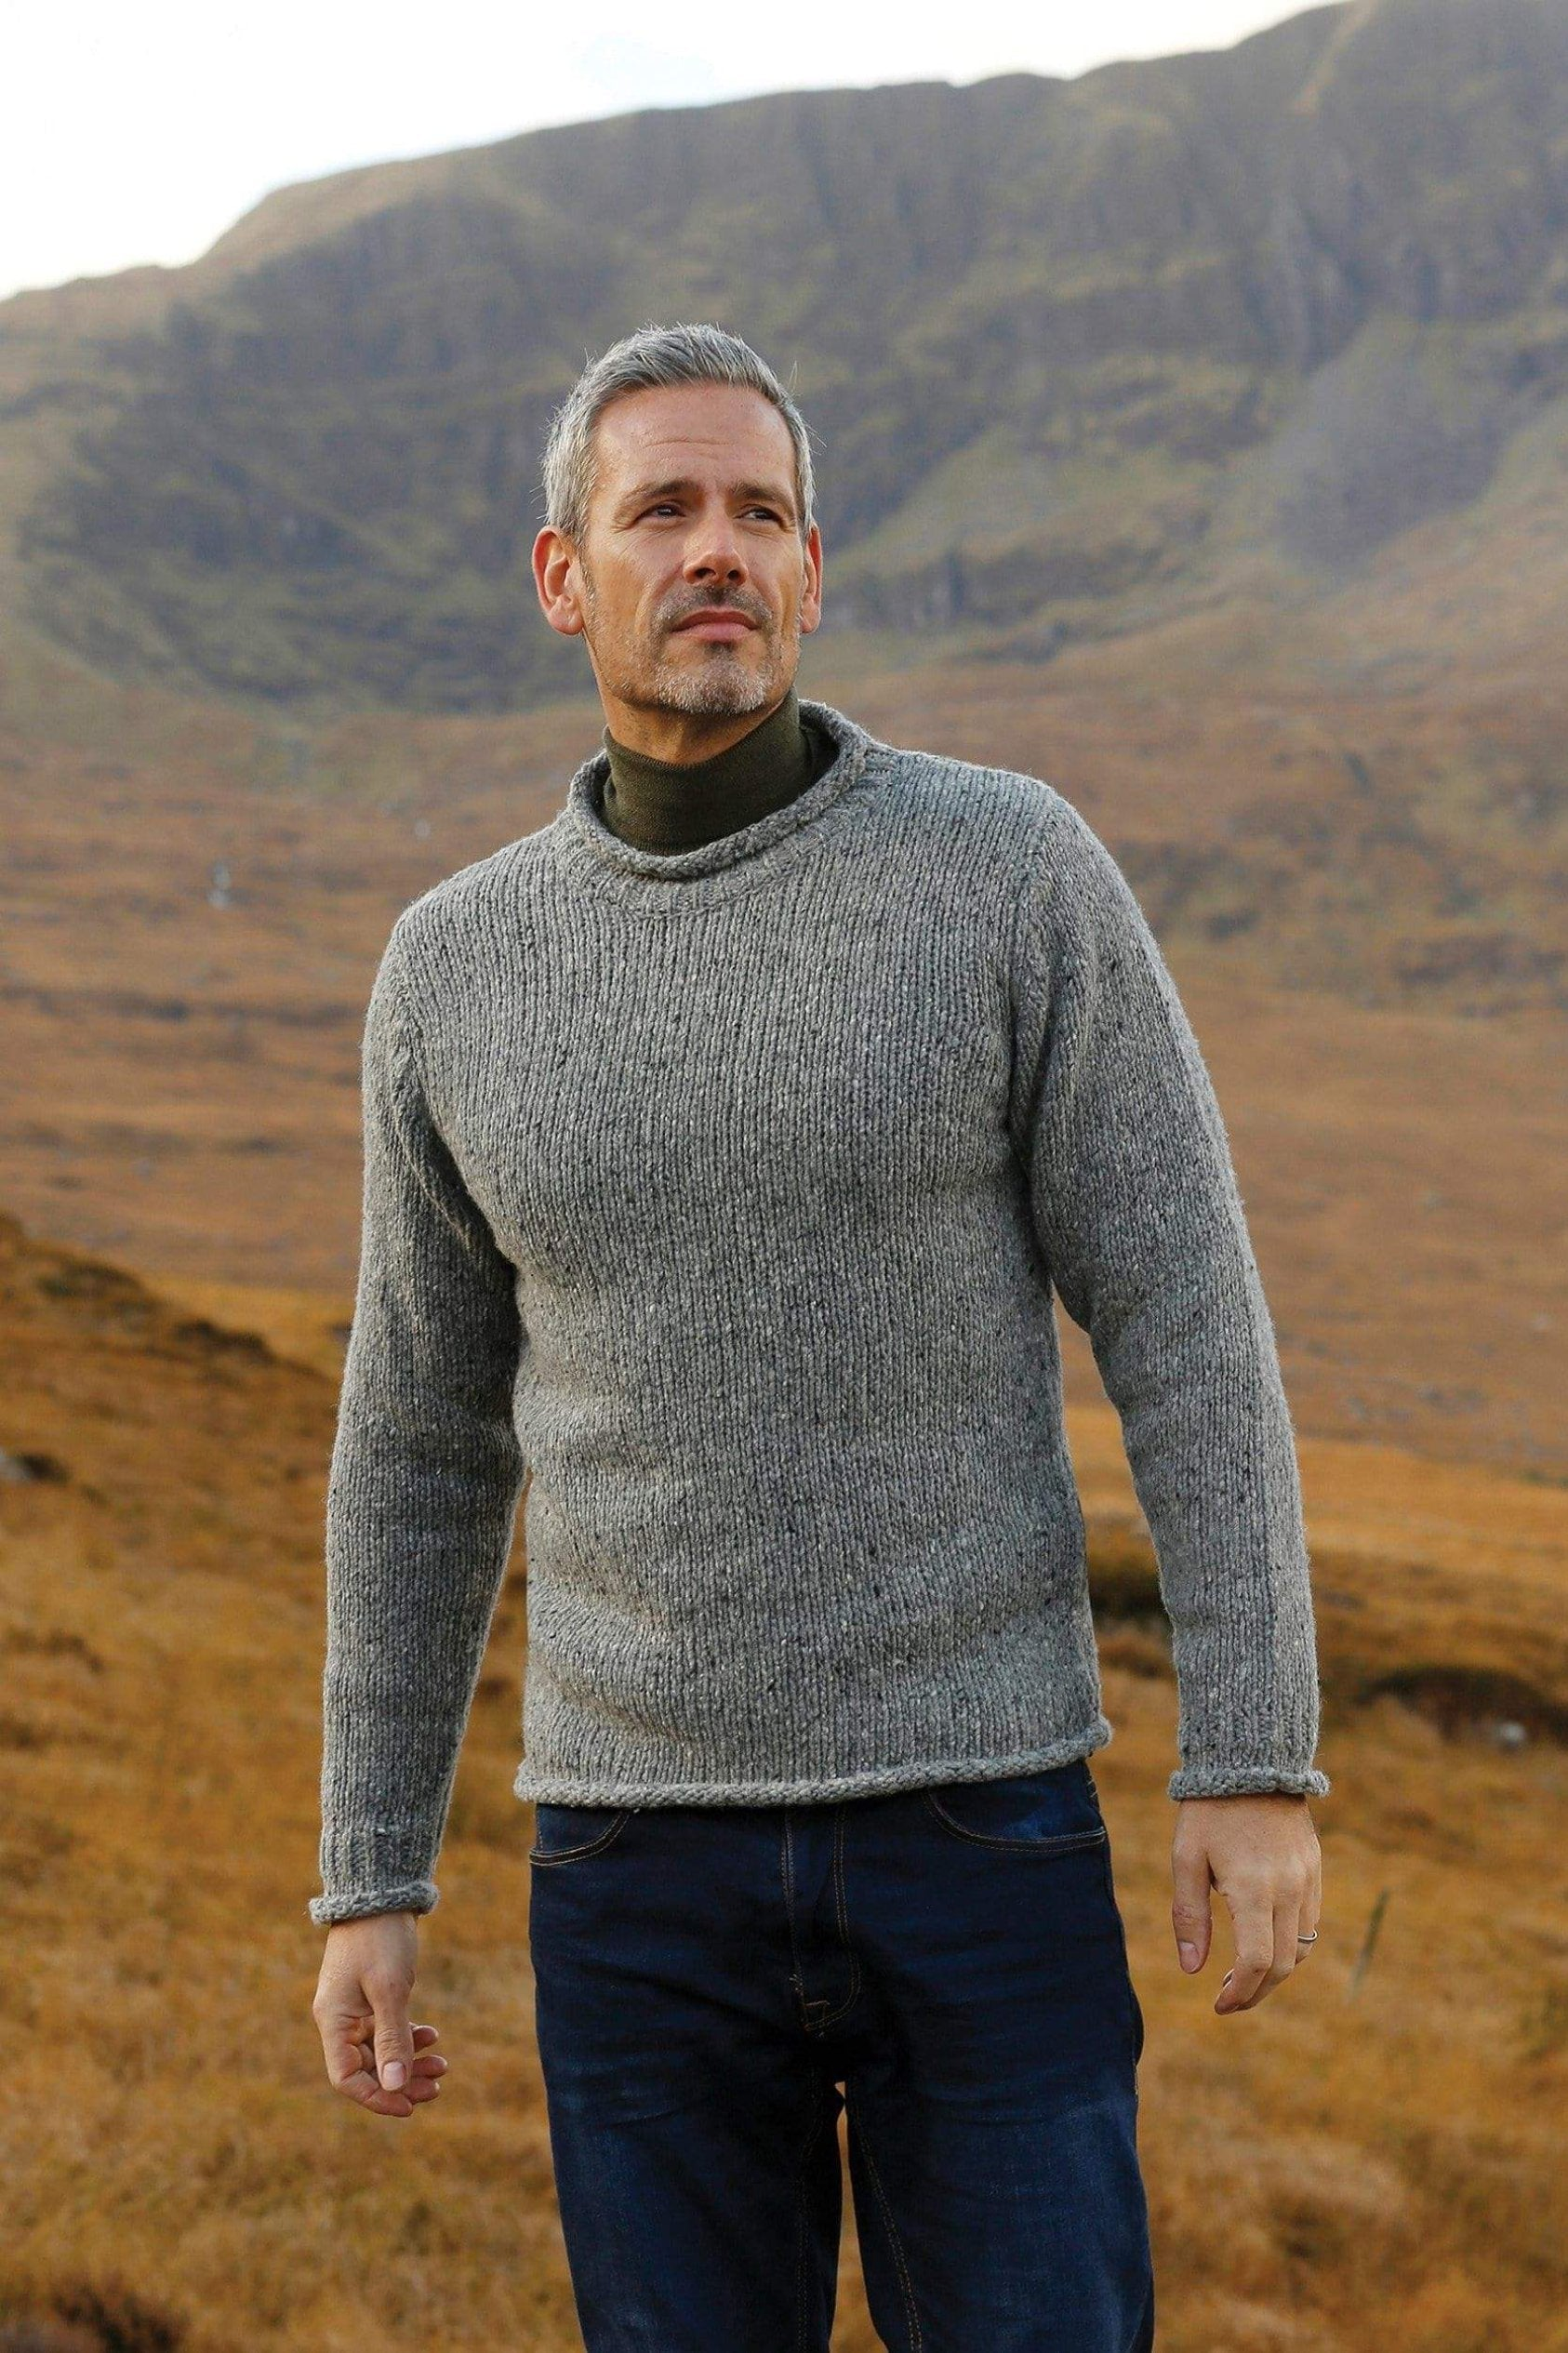 d5f8dbb9d Mens Roll neck Aran fishermans sweater – aran sweaters ireland